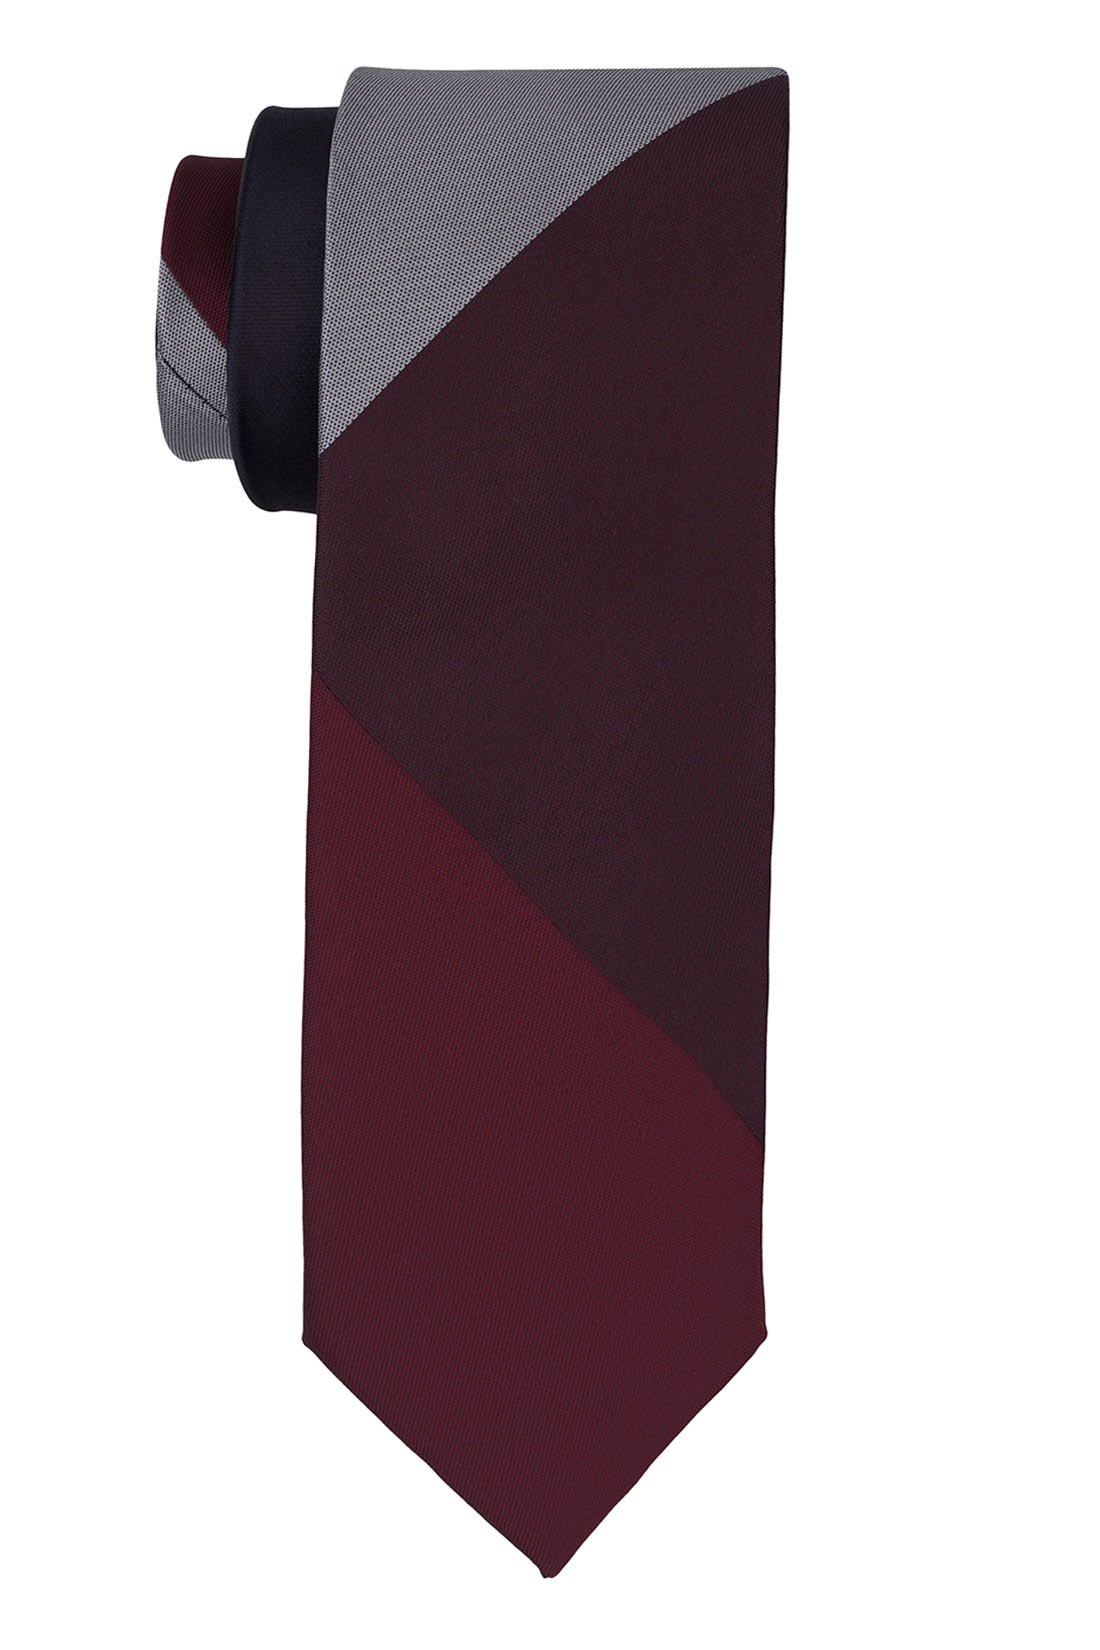 Muticolor Solid Maroon And Grey Silk Necktie